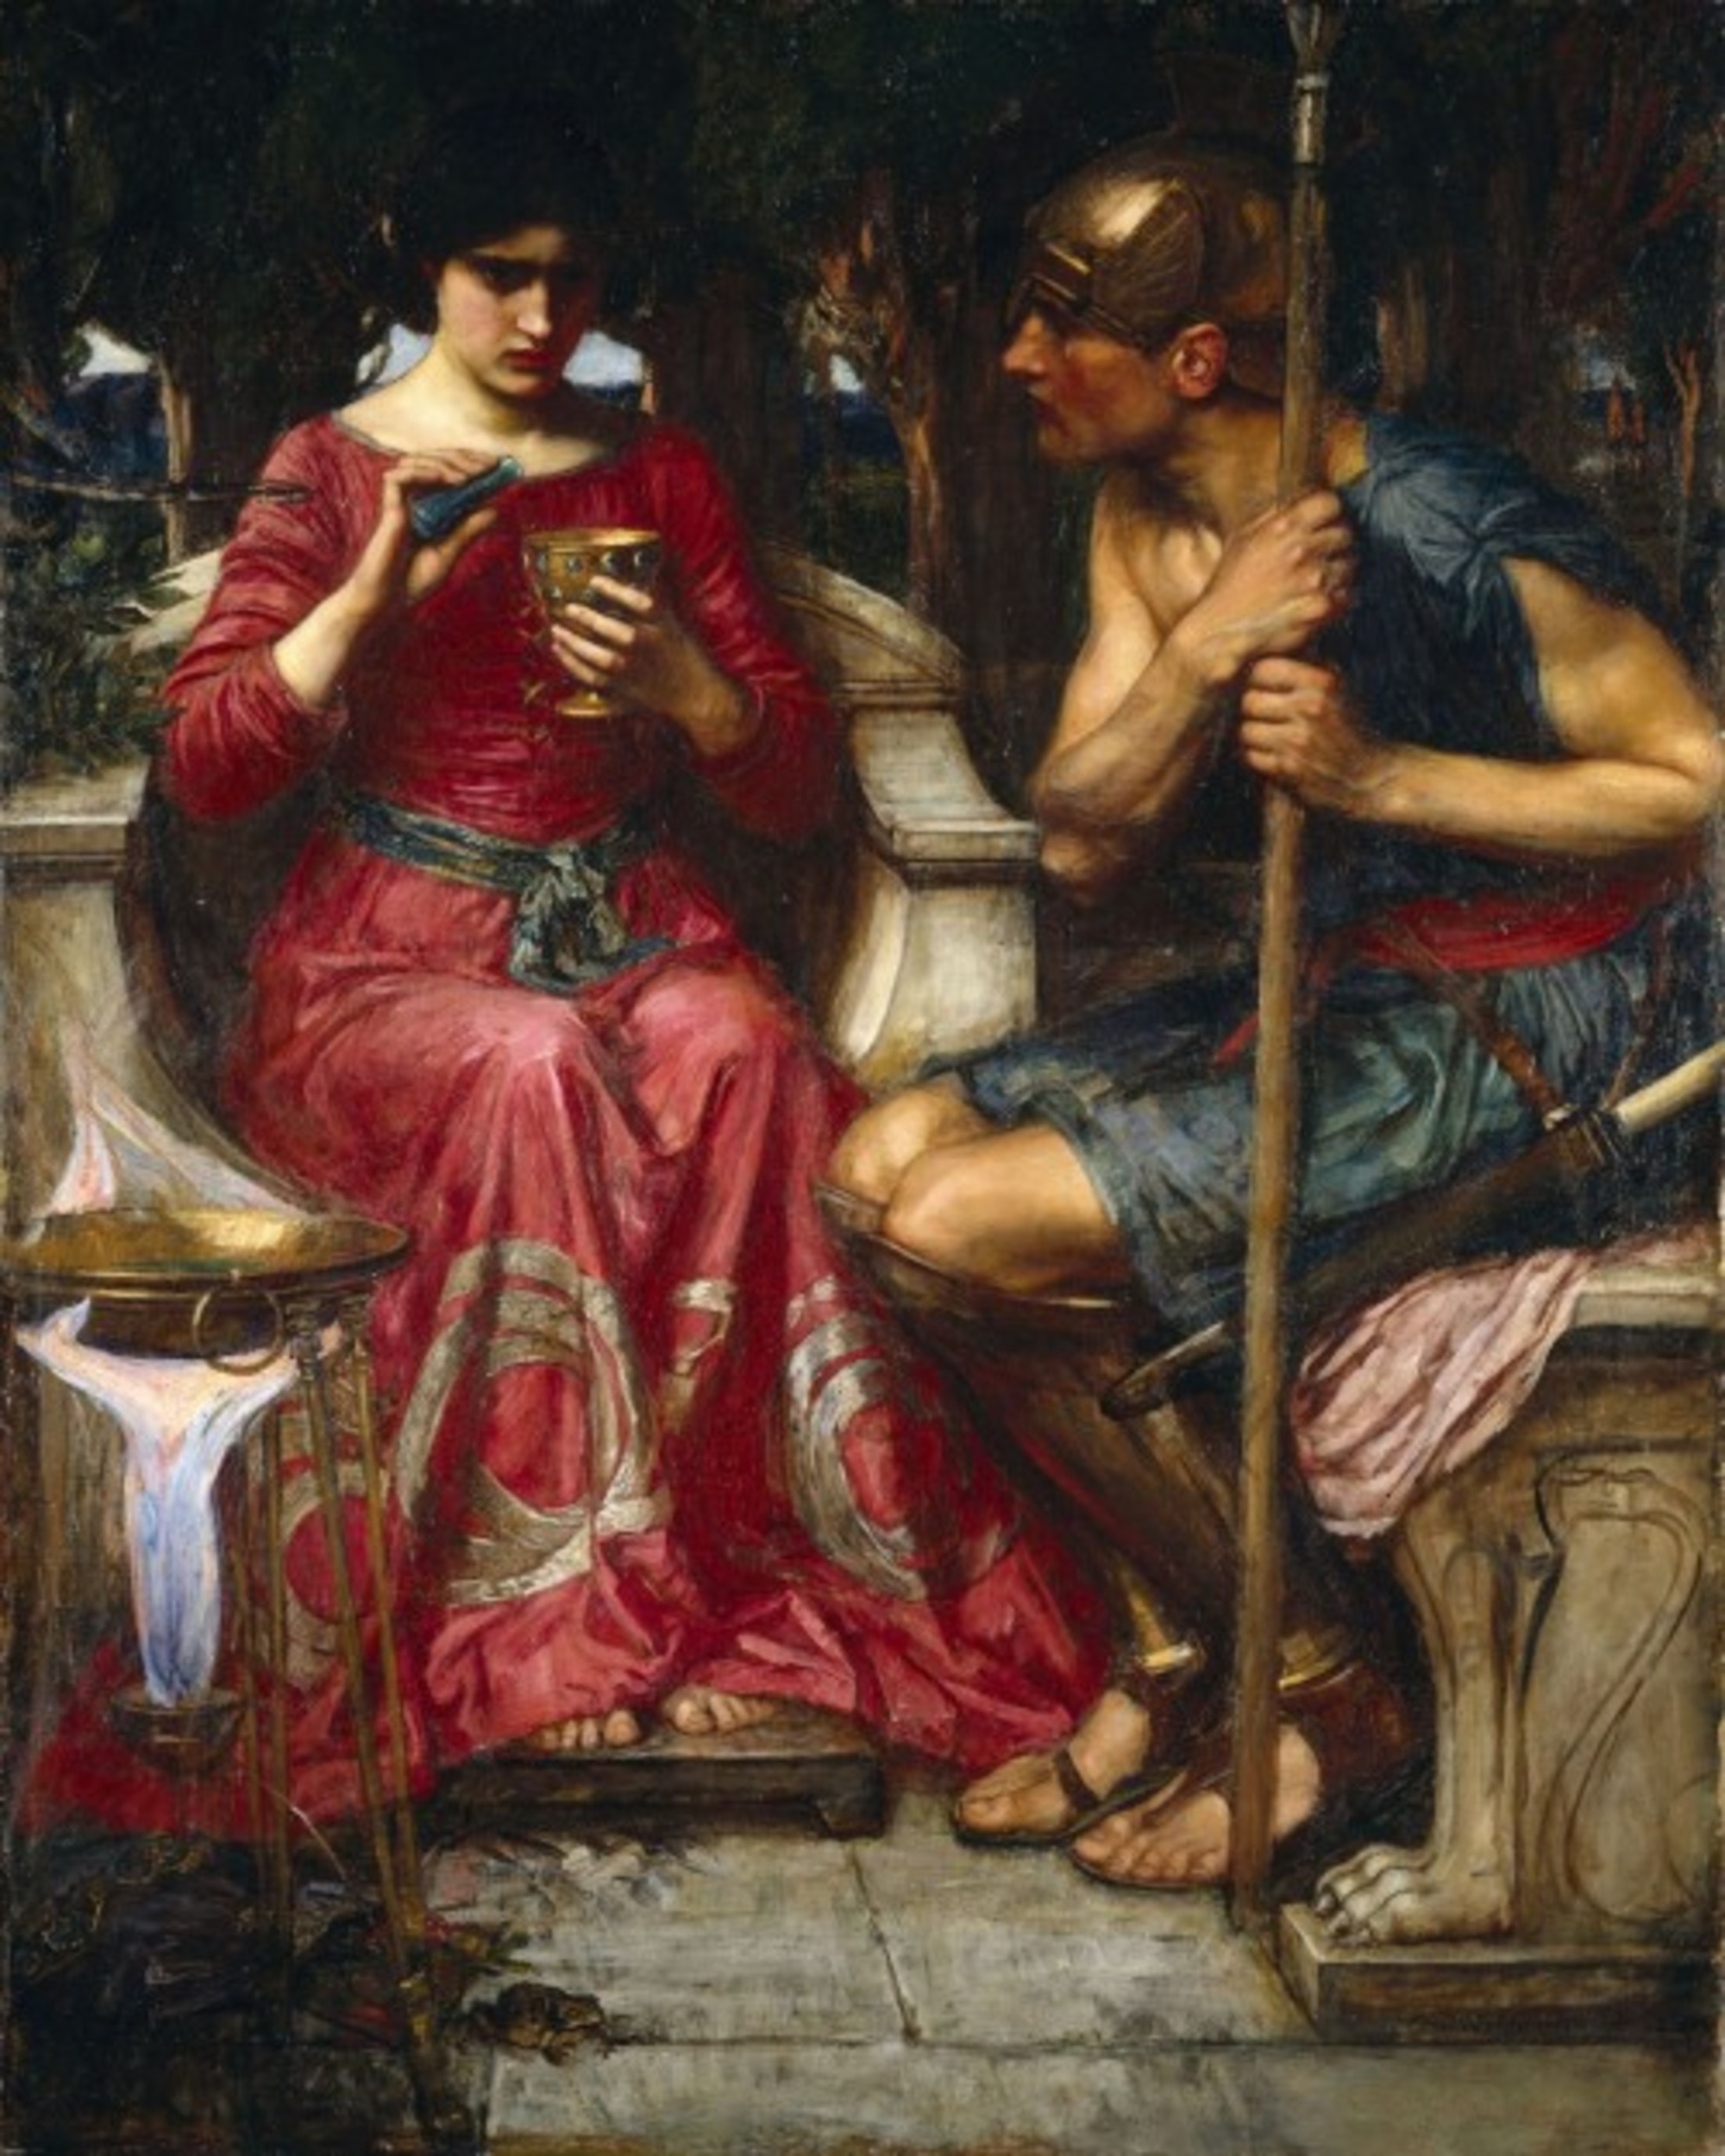 Jason_and_Medea_-_John_William_Waterhouse.jpg